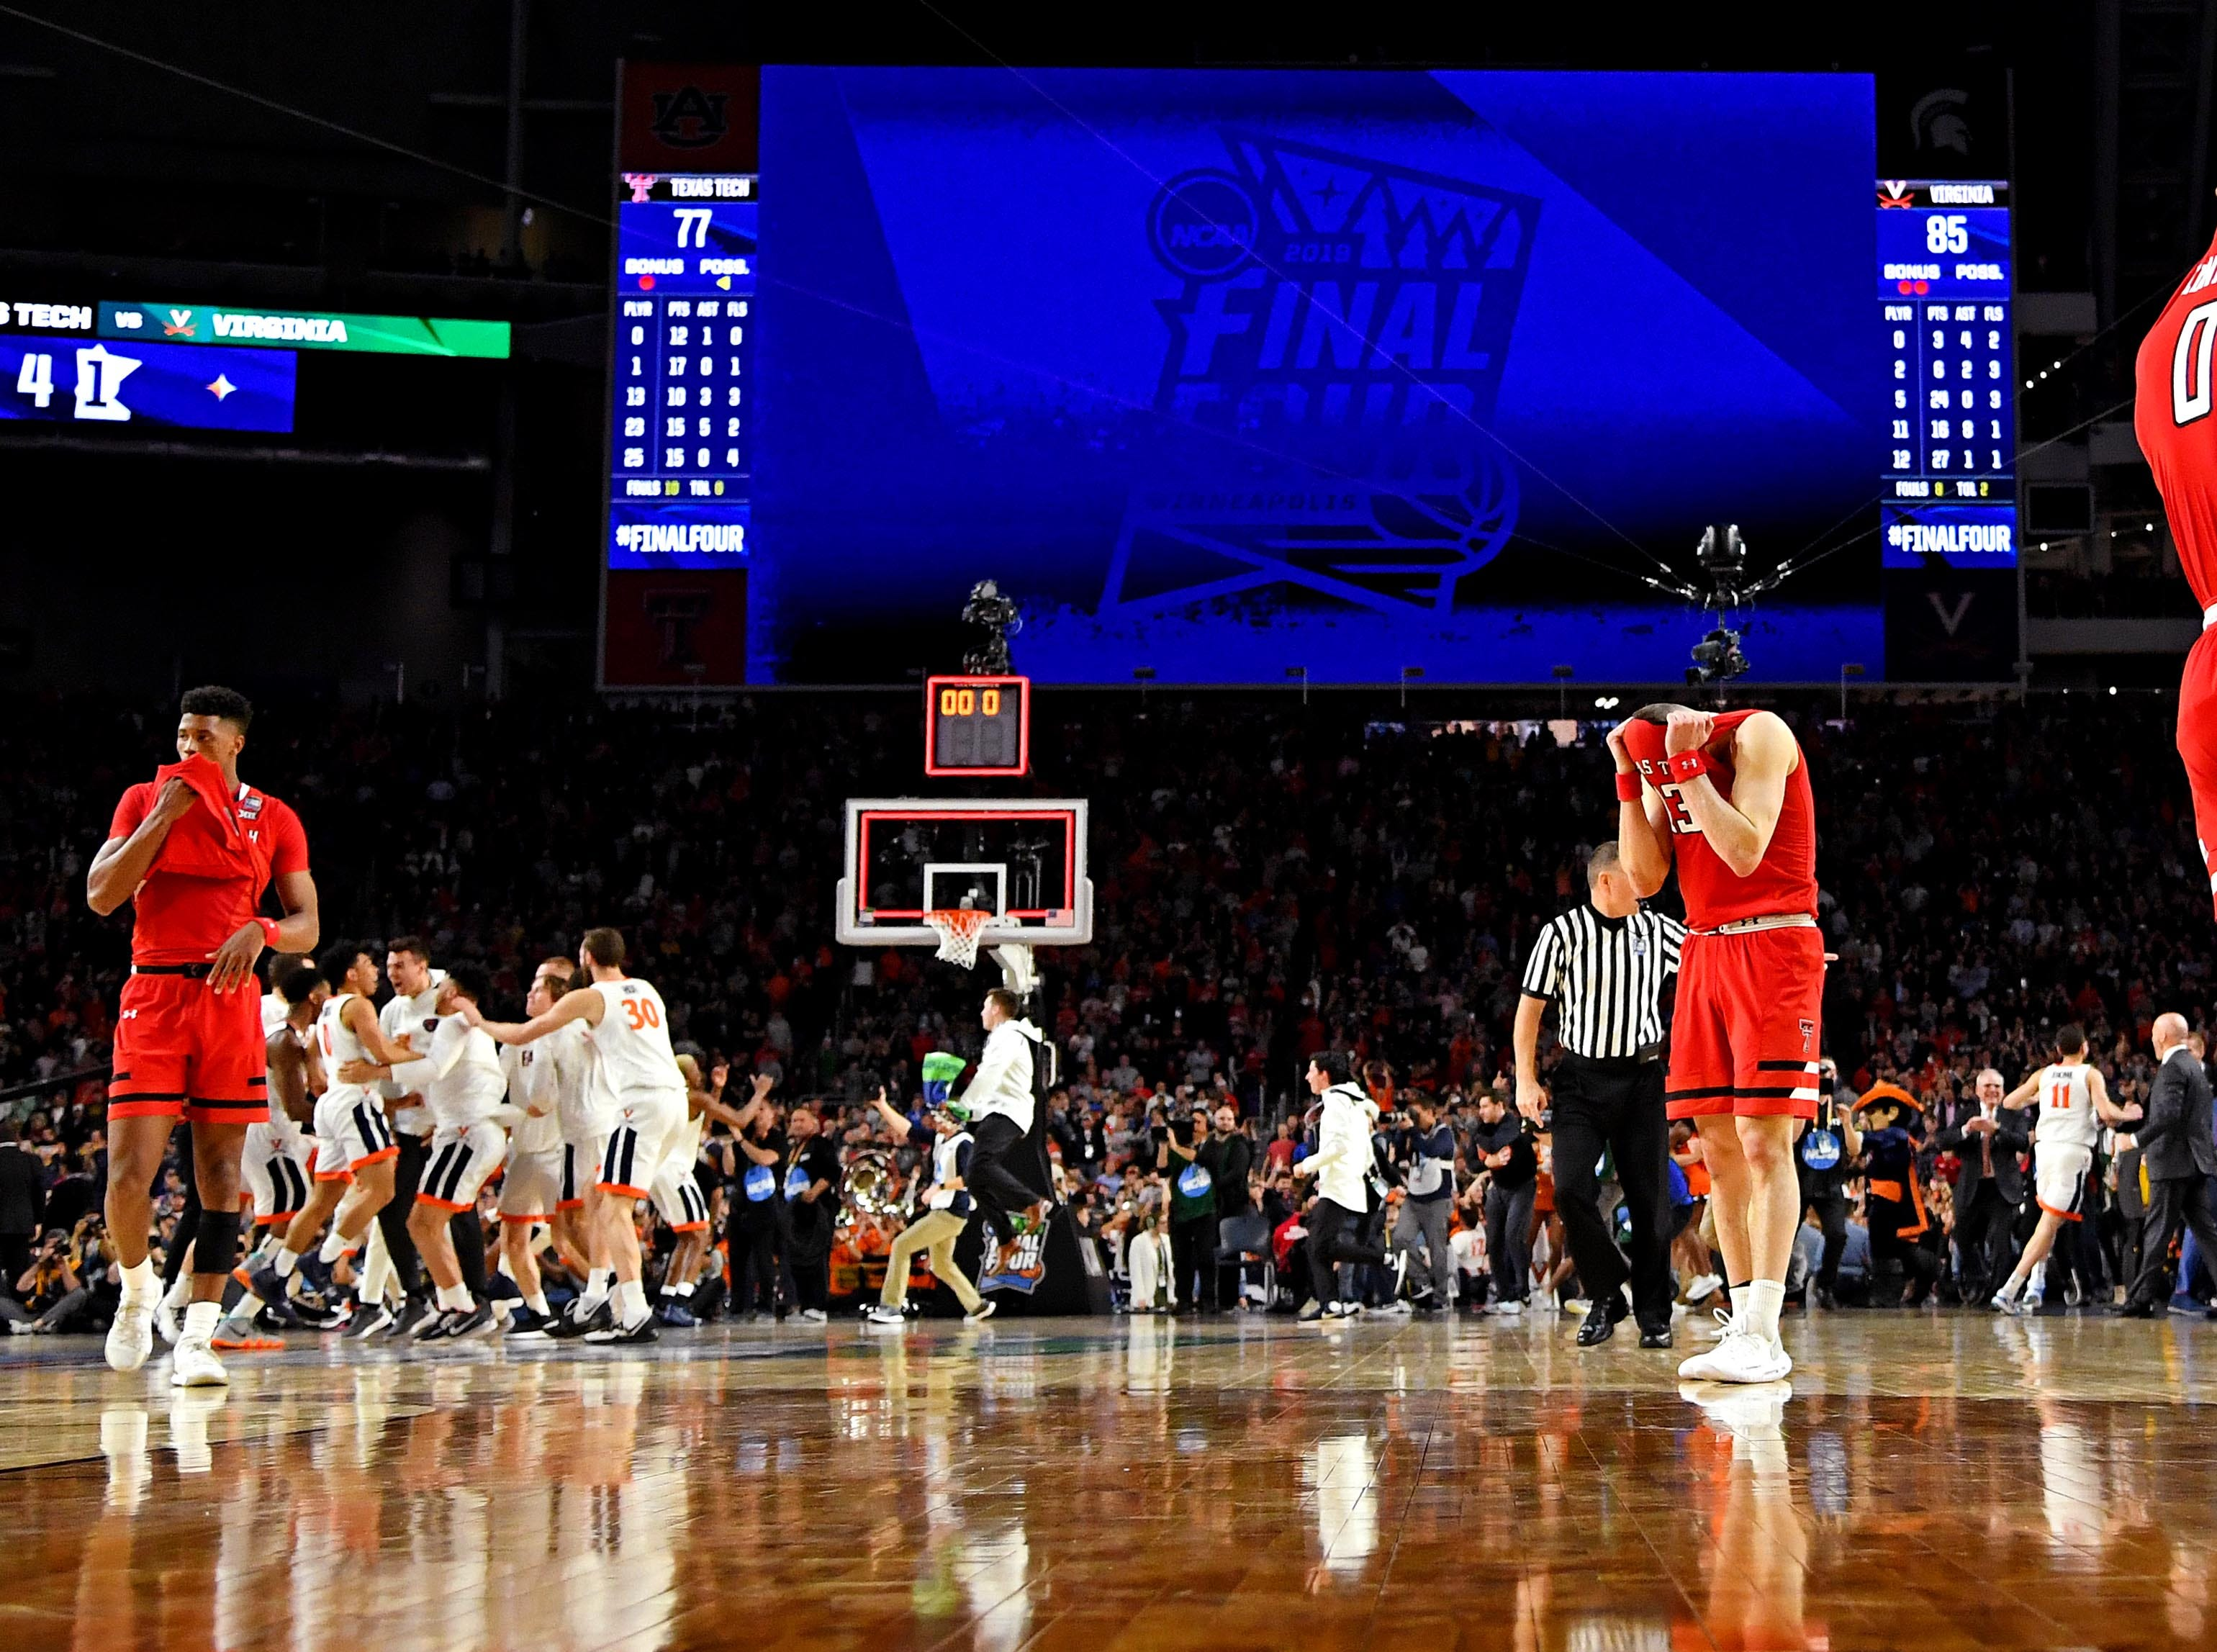 Apr 8, 2019; Minneapolis, MN, USA; Texas Tech Red Raiders guard Kyler Edwards (0) reacts after losing to the Virginia Cavaliers in the championship game of the 2019 men's Final Four at US Bank Stadium. Mandatory Credit: Bob Donnan-USA TODAY Sports